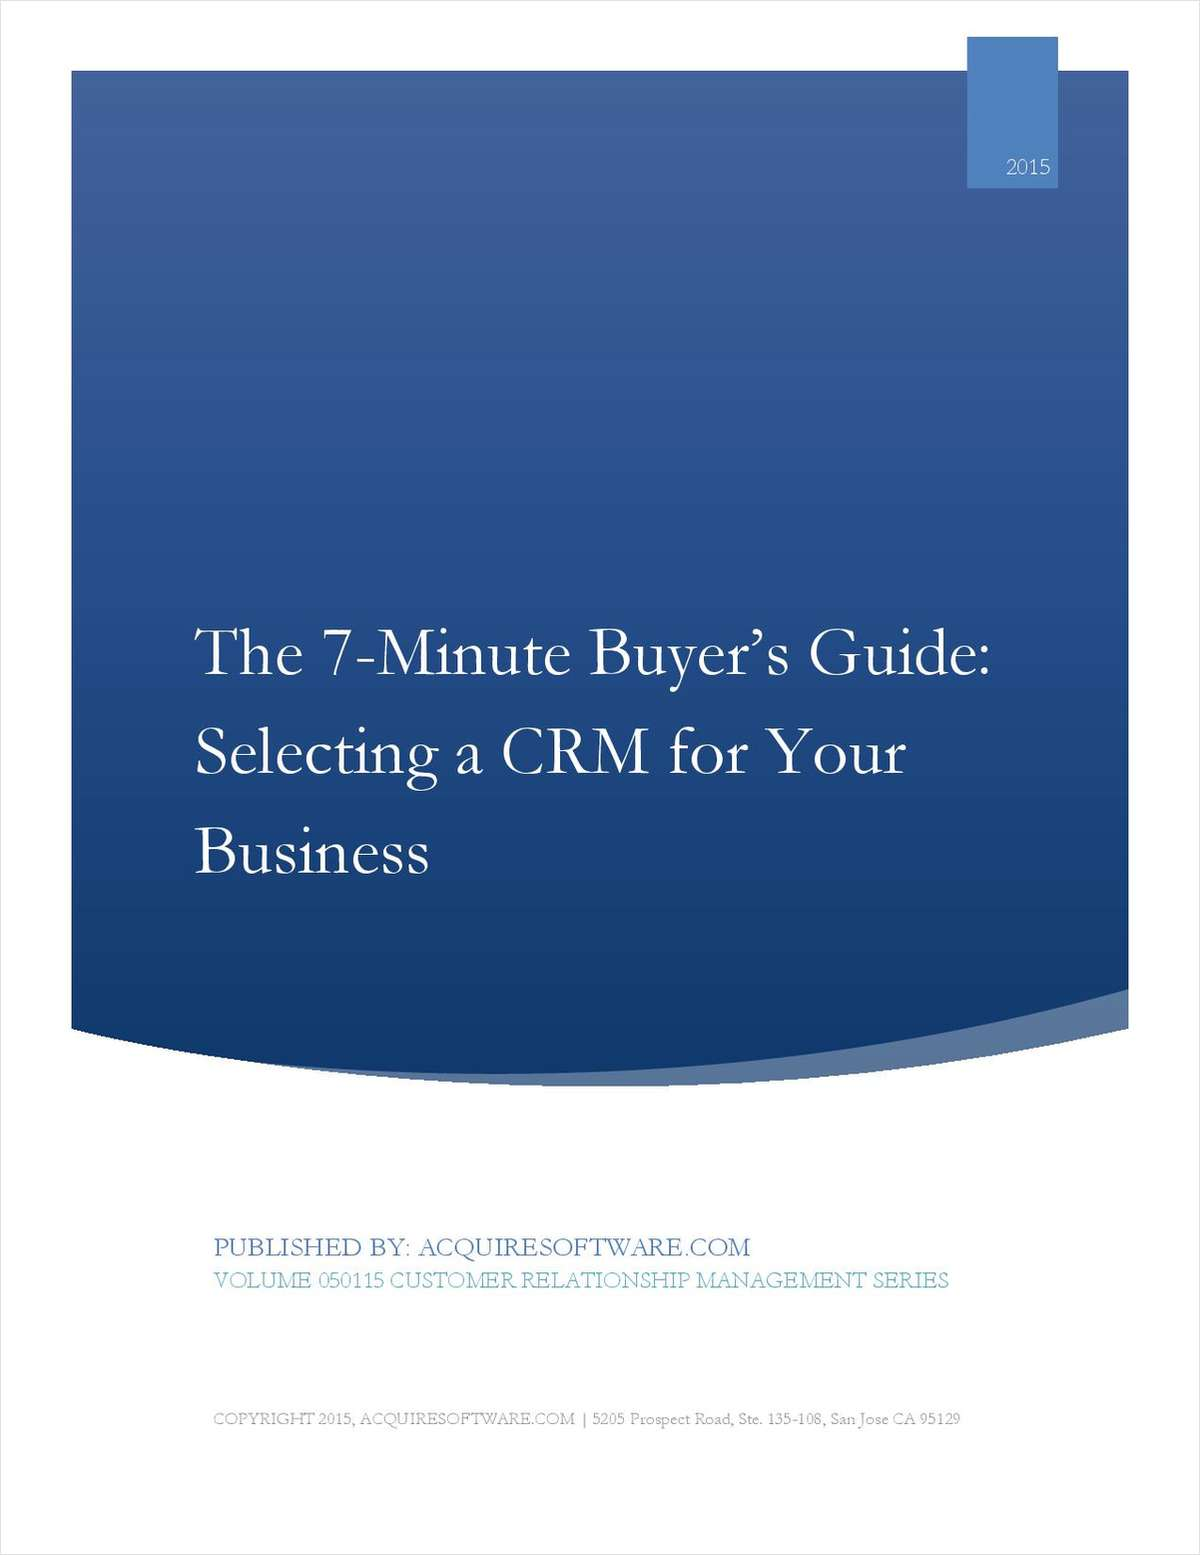 7 Minute Buyer's Guide: Identifying and Selecting the Right Sales and Customer Management CRM for Your Business.